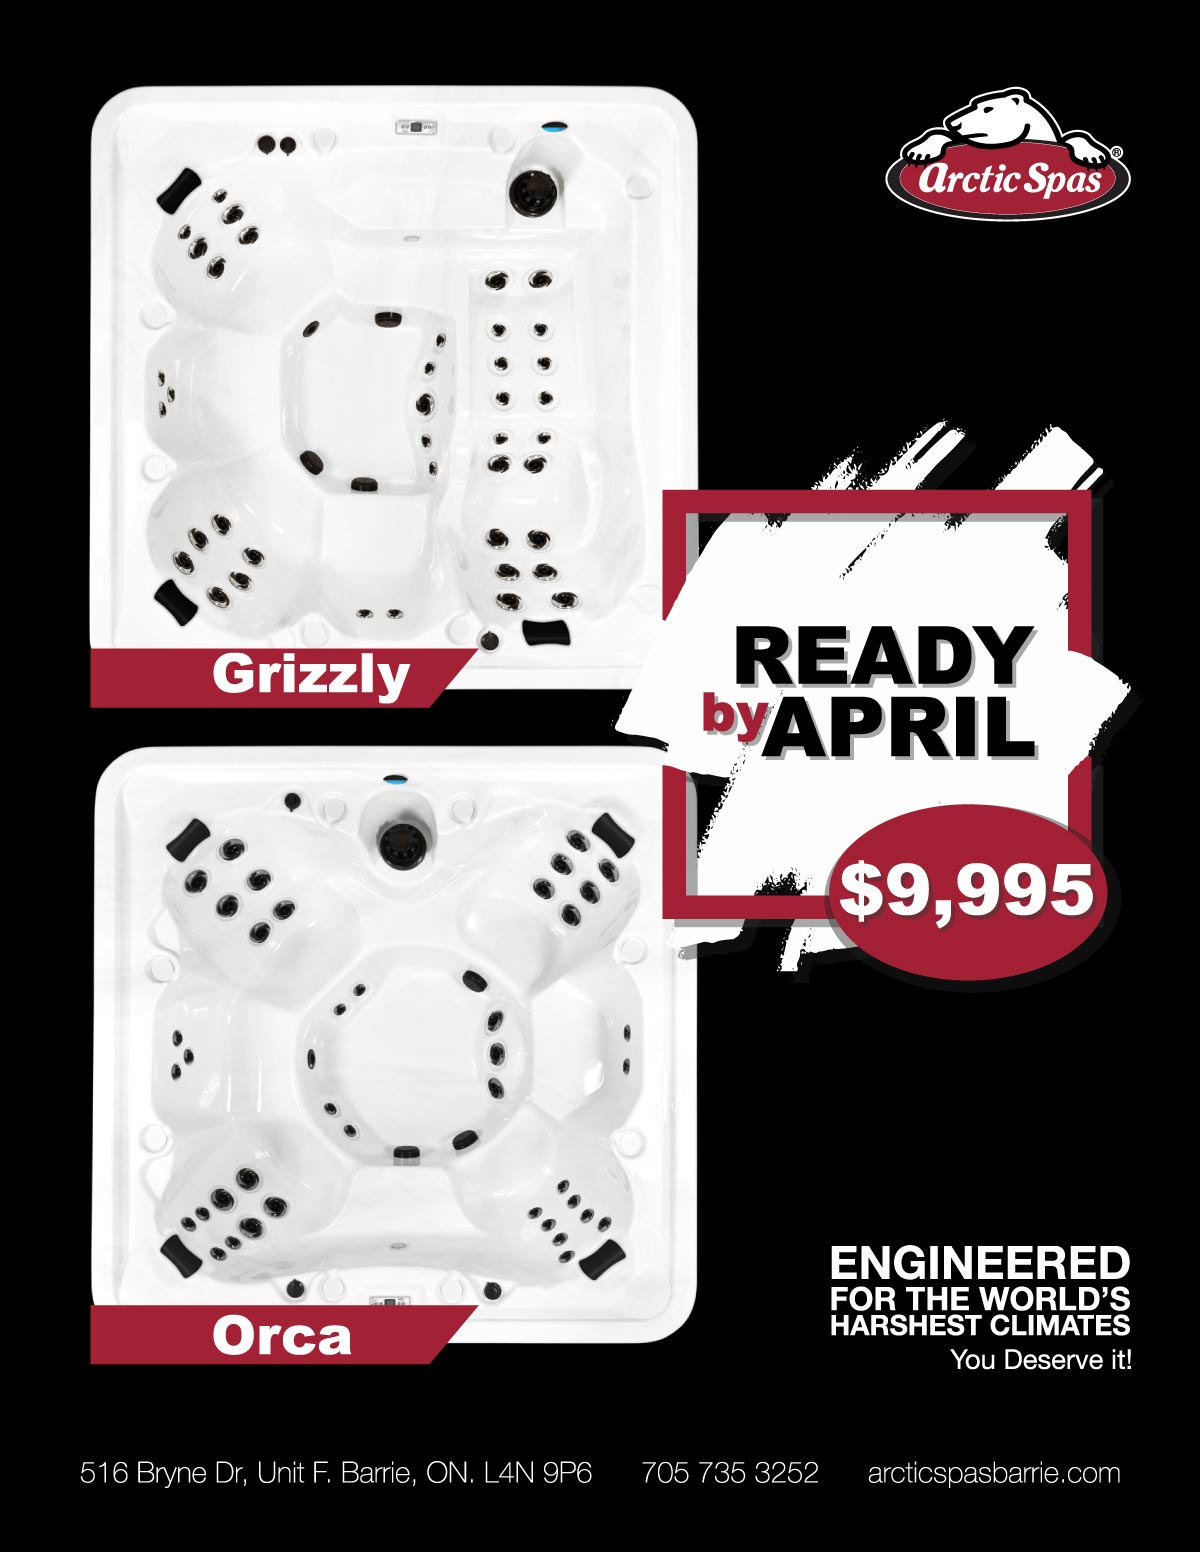 Arctic Spas Barrie promo - ready by april